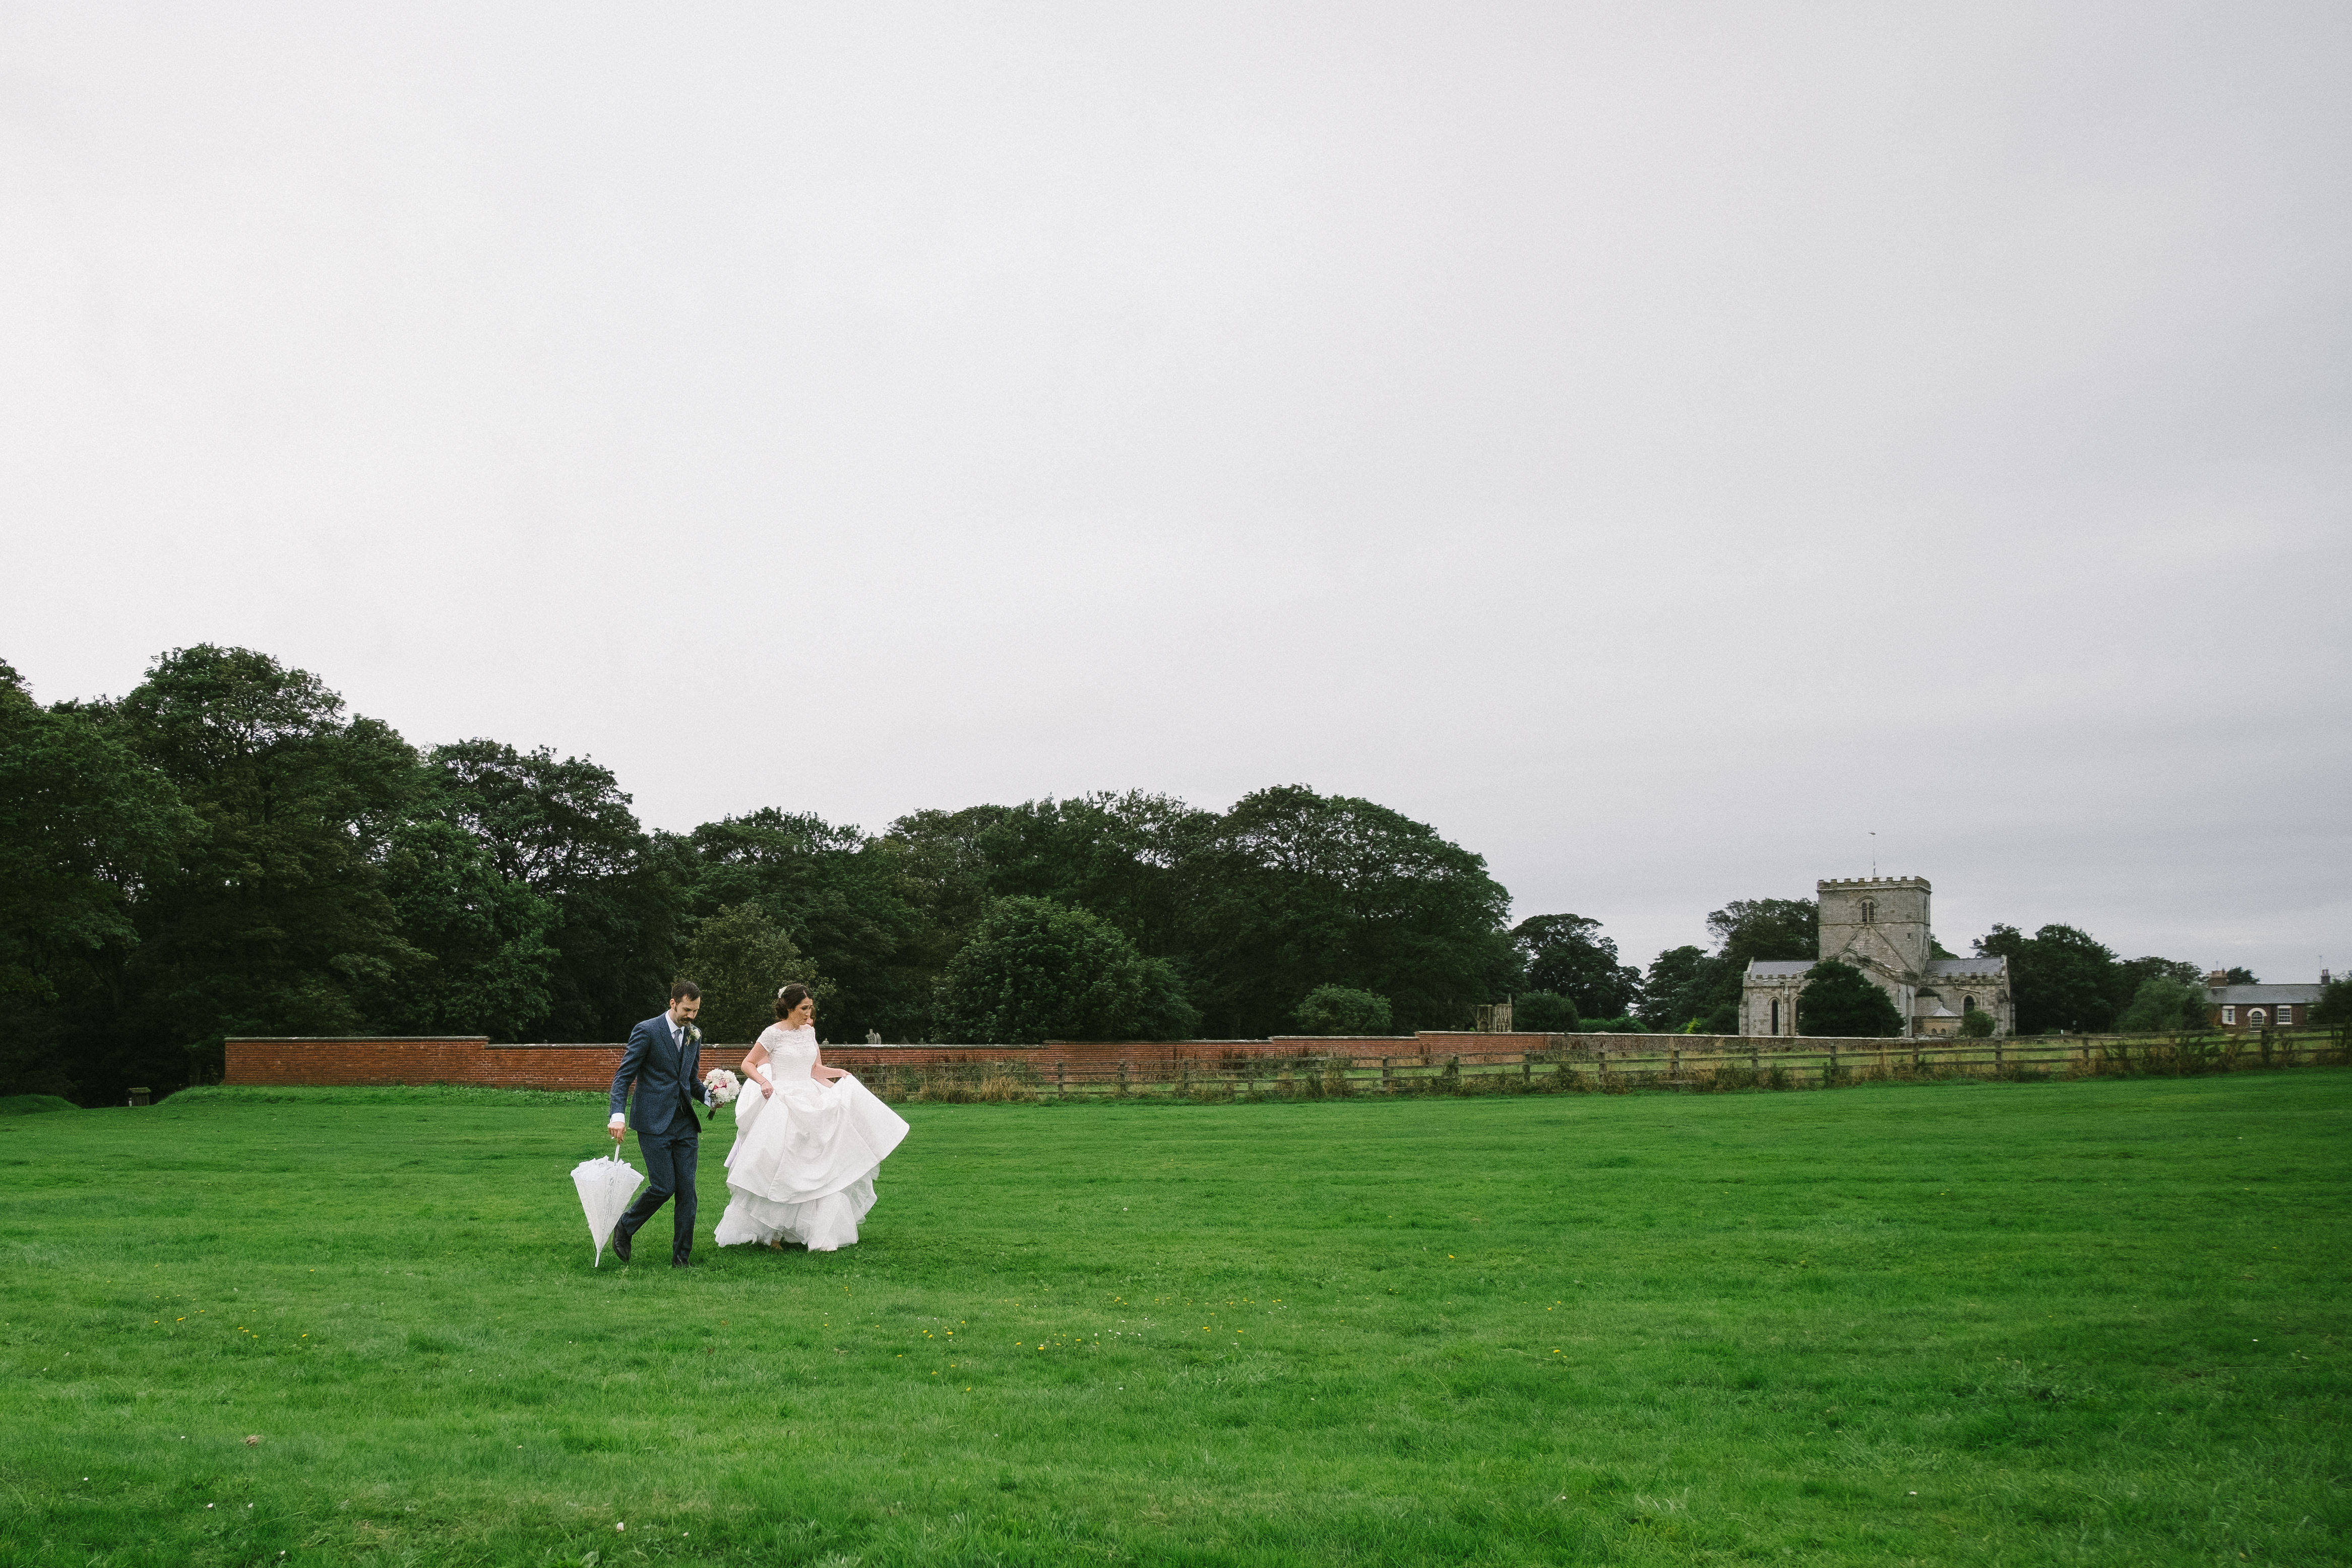 Katy & Tom Wedding Dale Farm, Yorkshire Wedding Photography by Barry Forshaw-0250.jpg